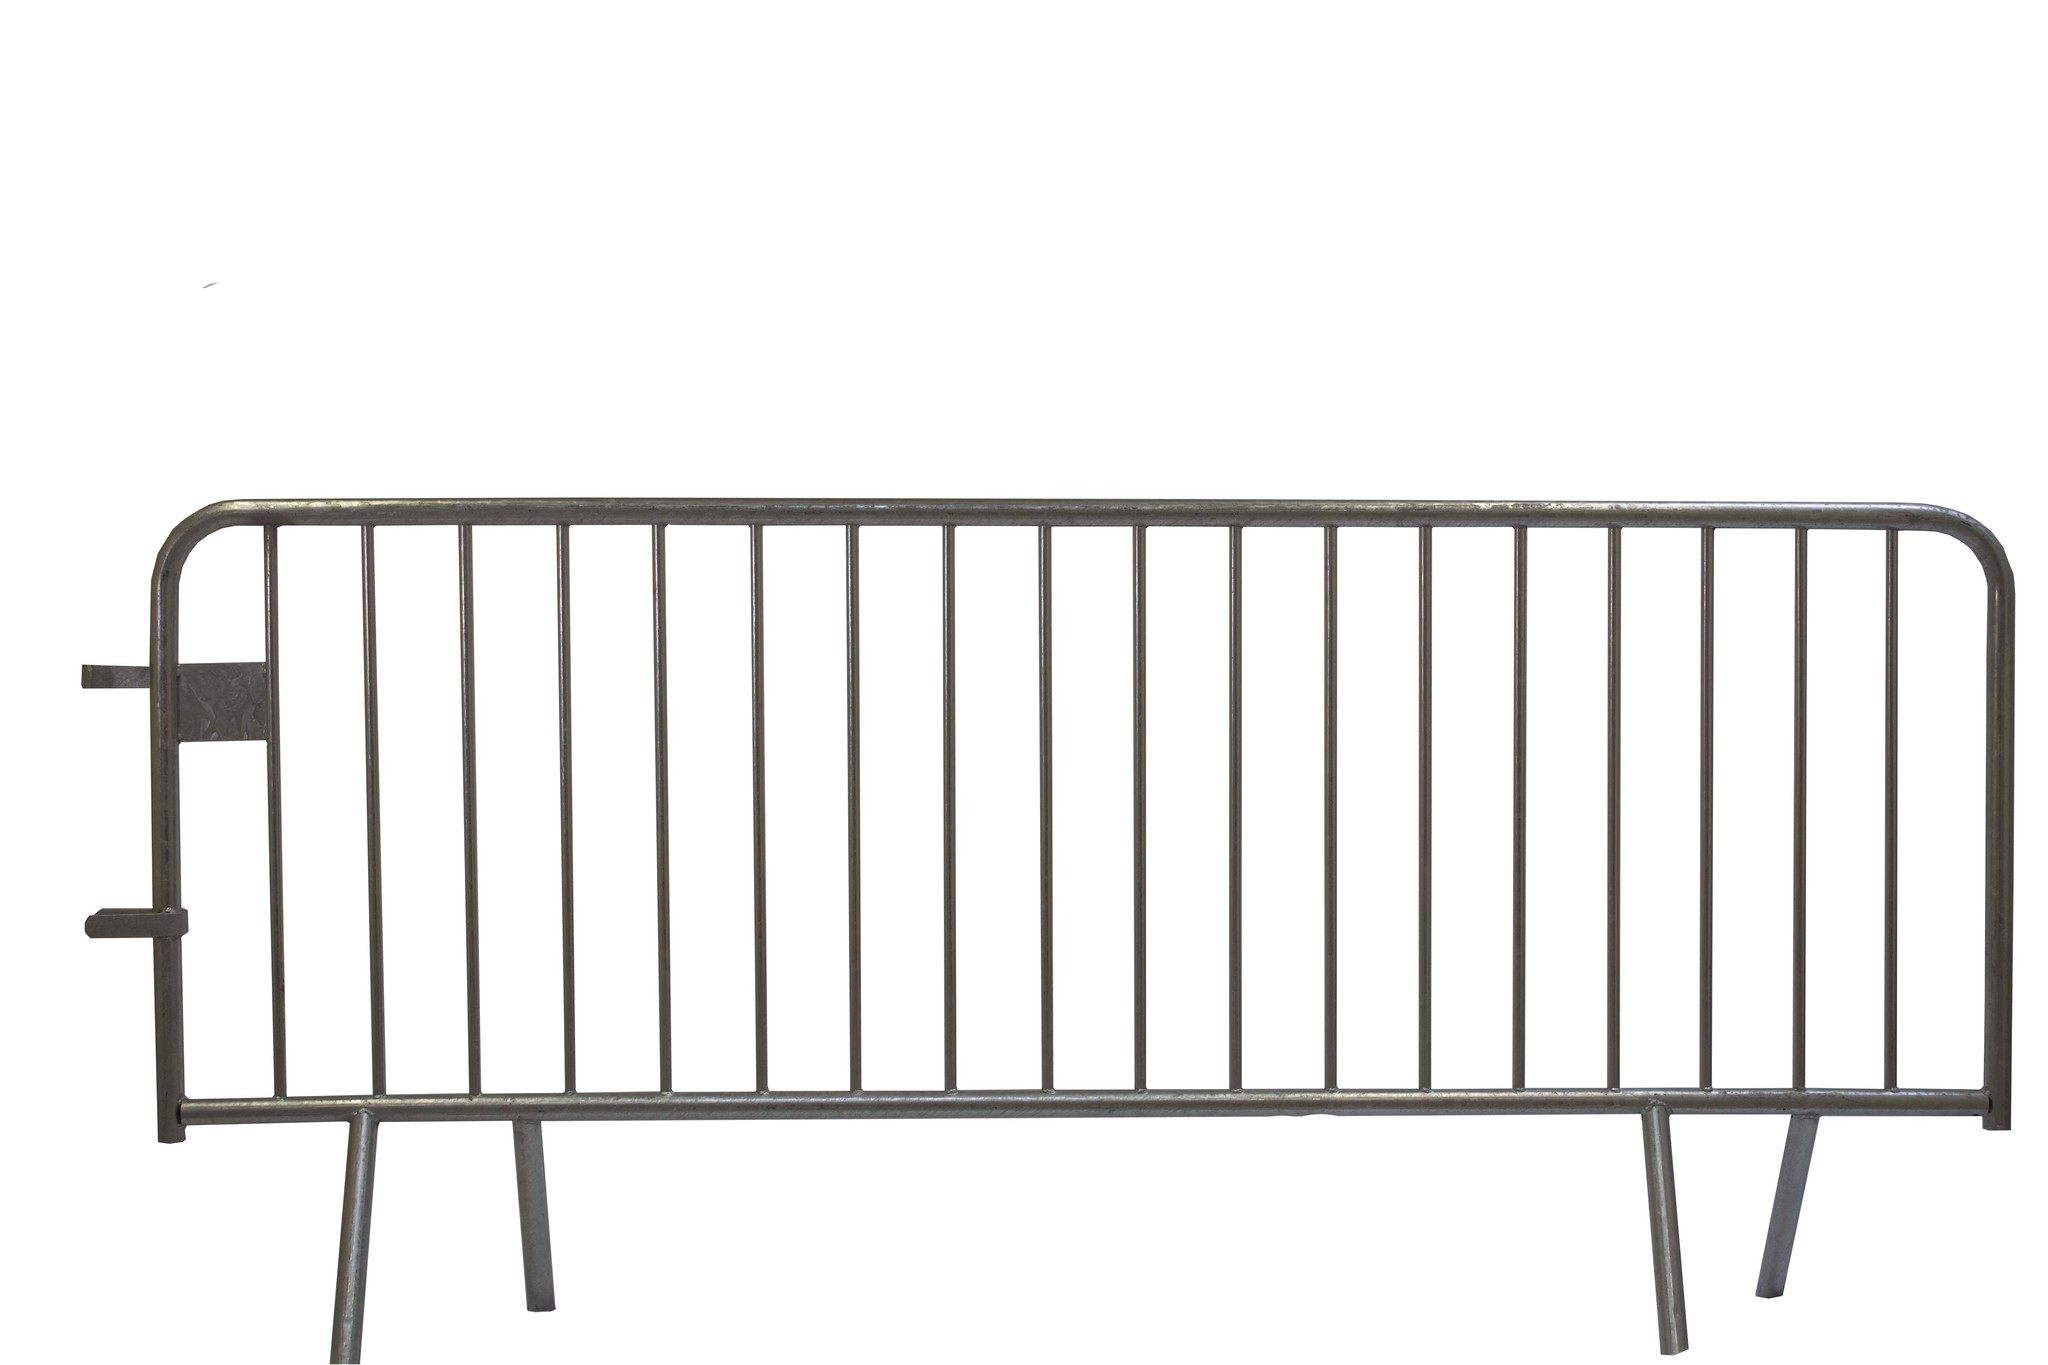 Crowd control barrier/ Police barrier 18 bars - 250 x 110 cm